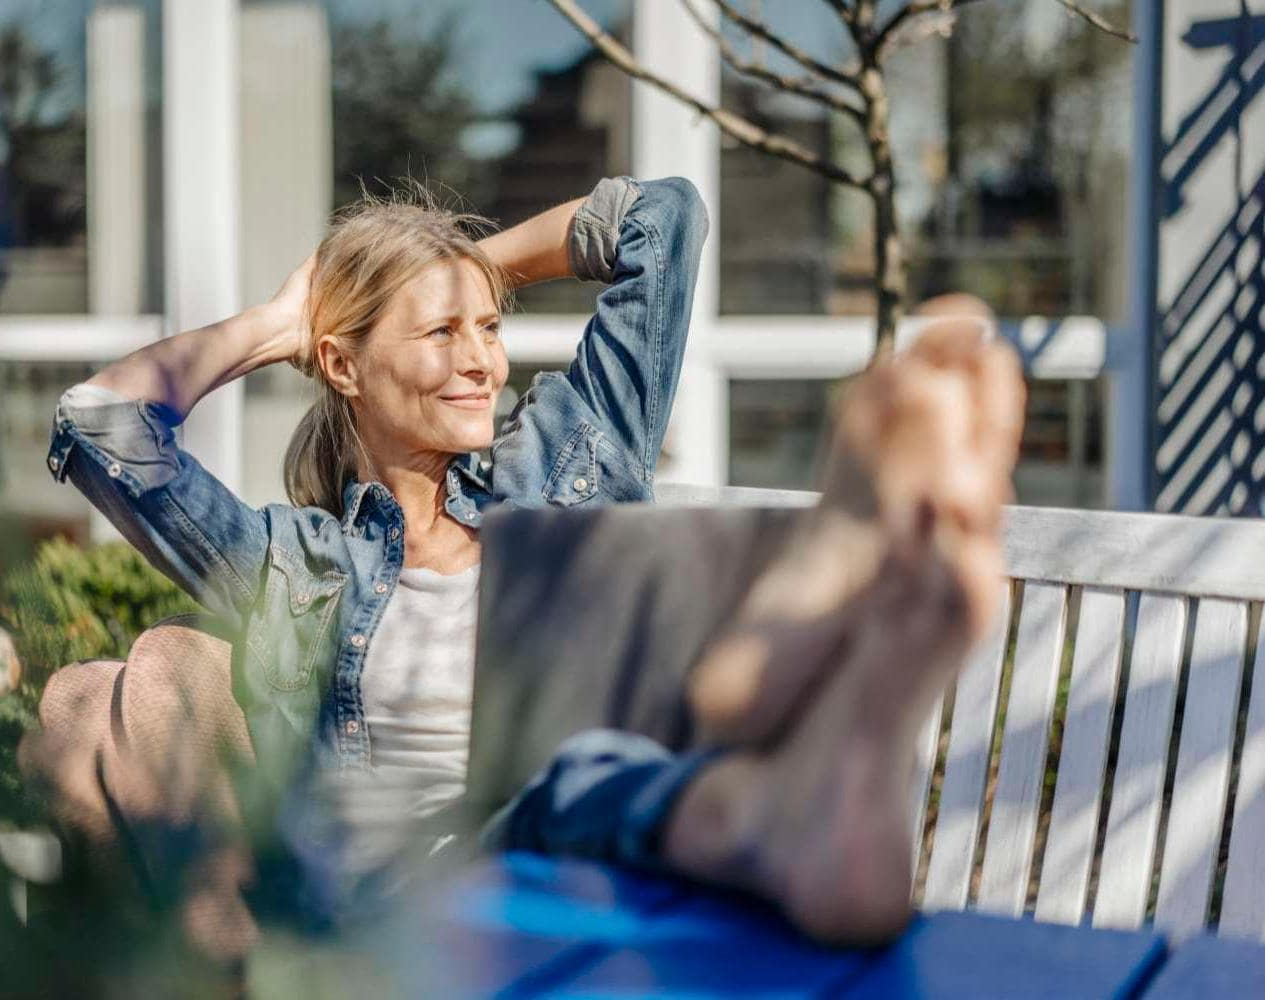 Smiling woman with laptop relaxing outside on garden bench